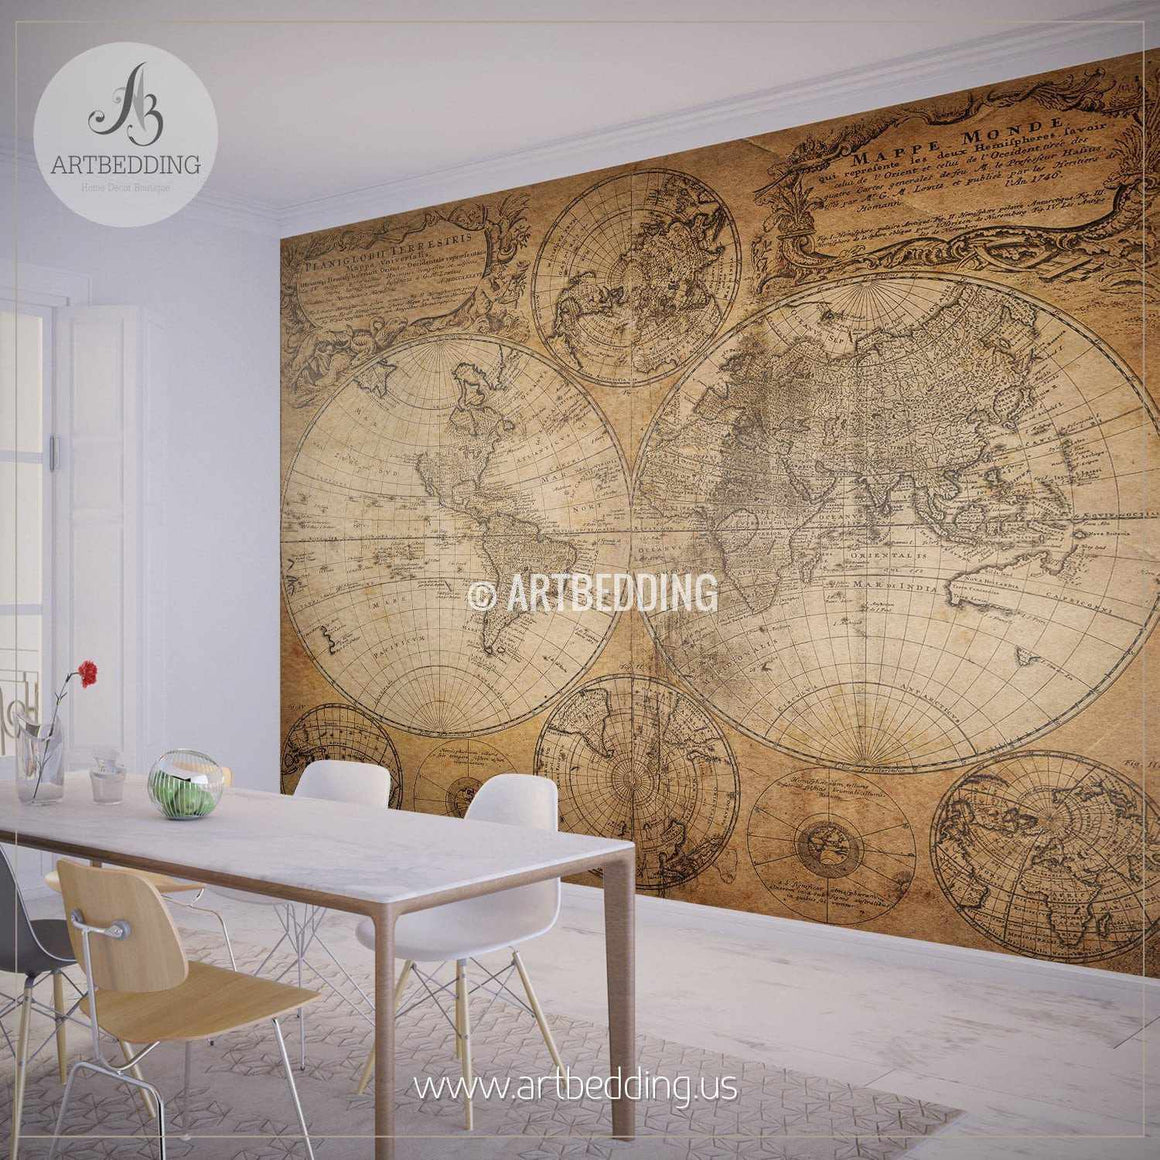 Vintage map from 1746 Hemisphere Wall Mural, Self Adhesive Peel & Stick Photo Mural, Atlas wall mural, mural home decor wall mural